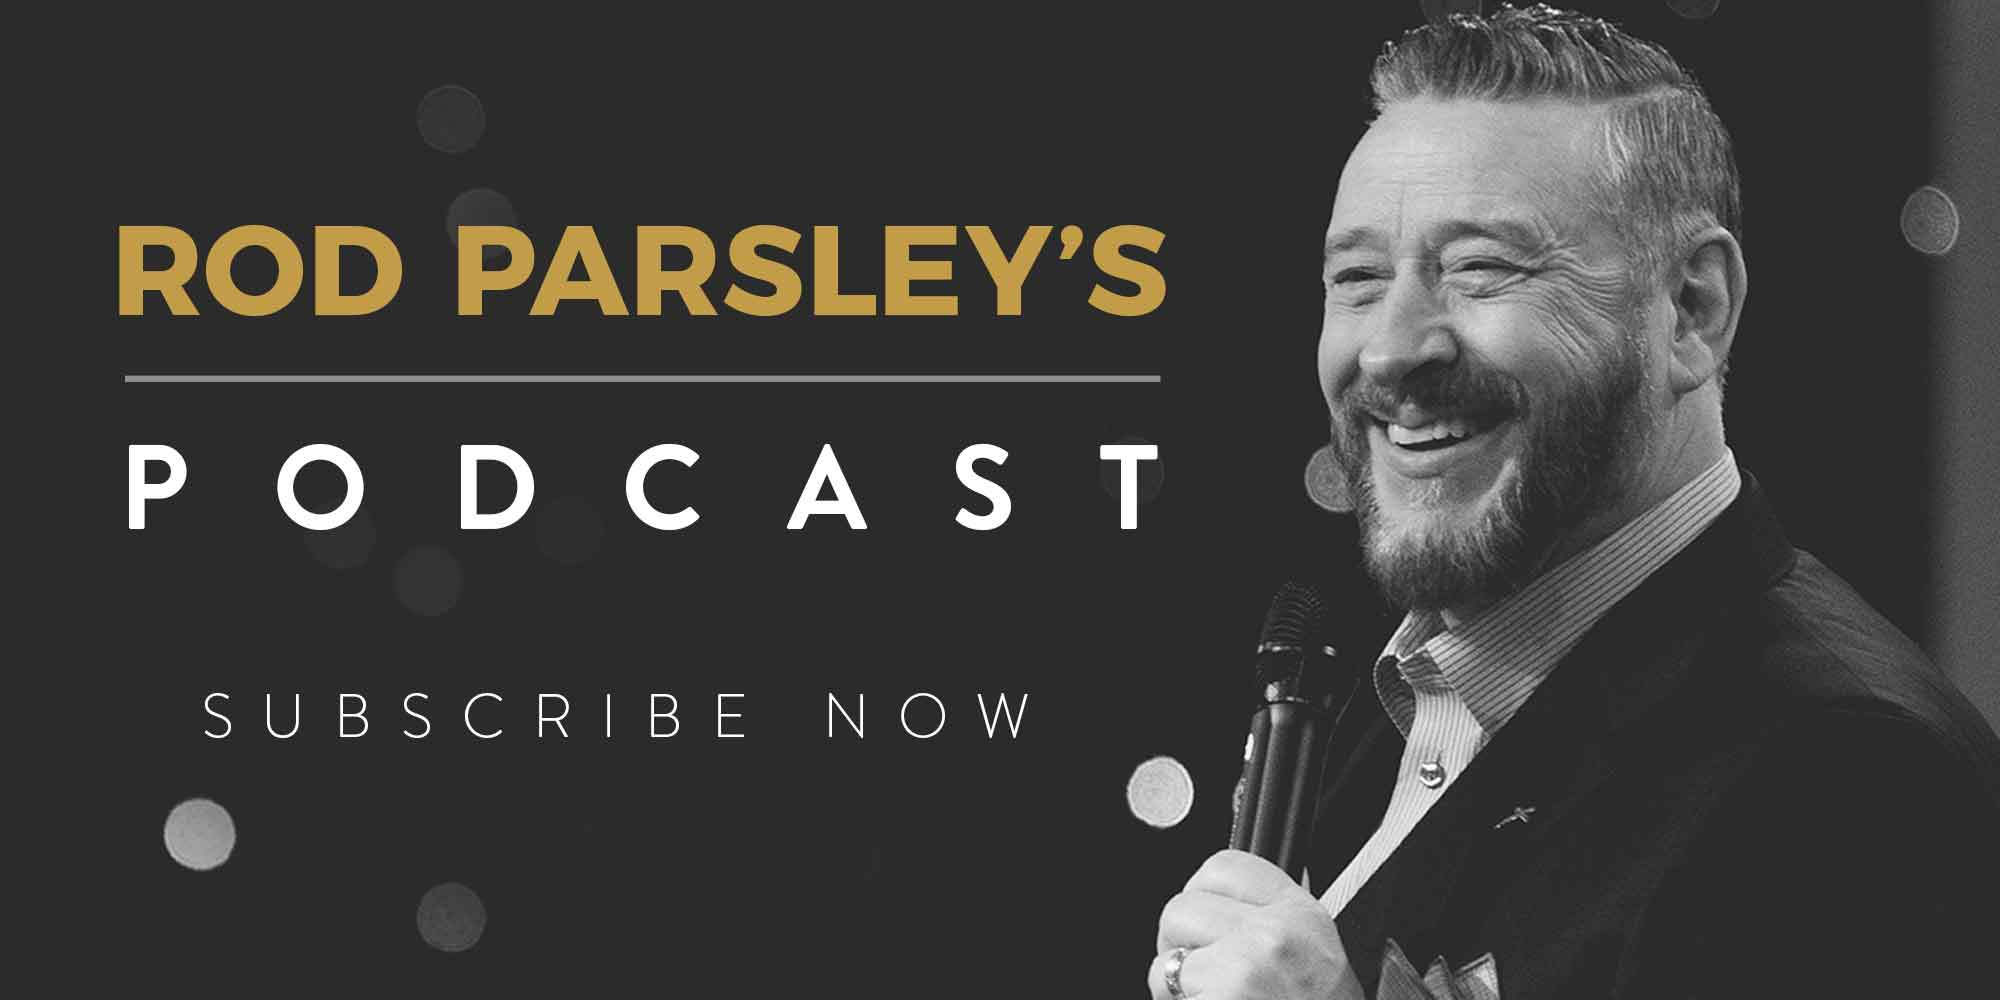 Rod Parsley's Podcast Subscribe Now